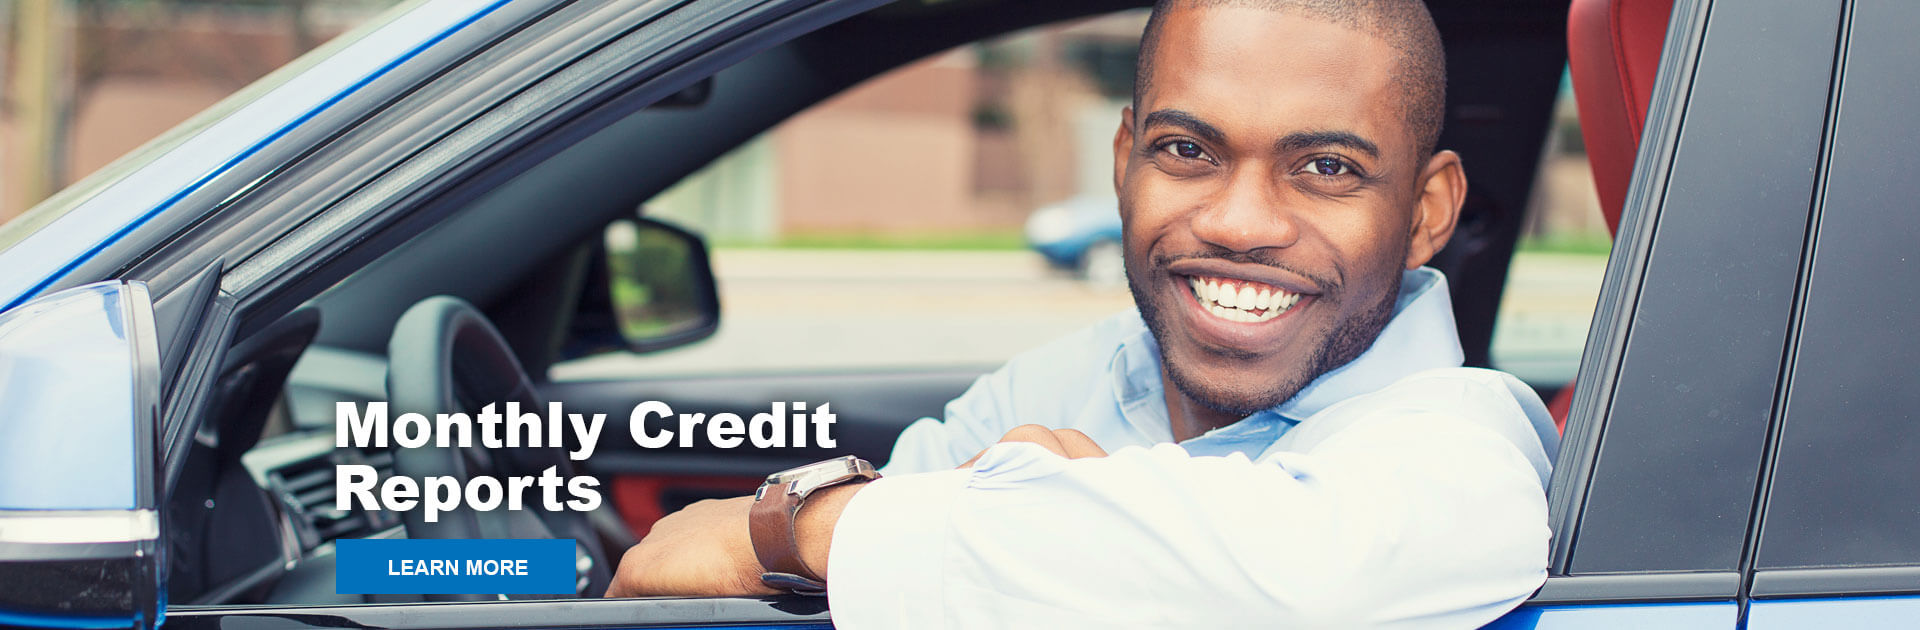 Monthly Credit Reports